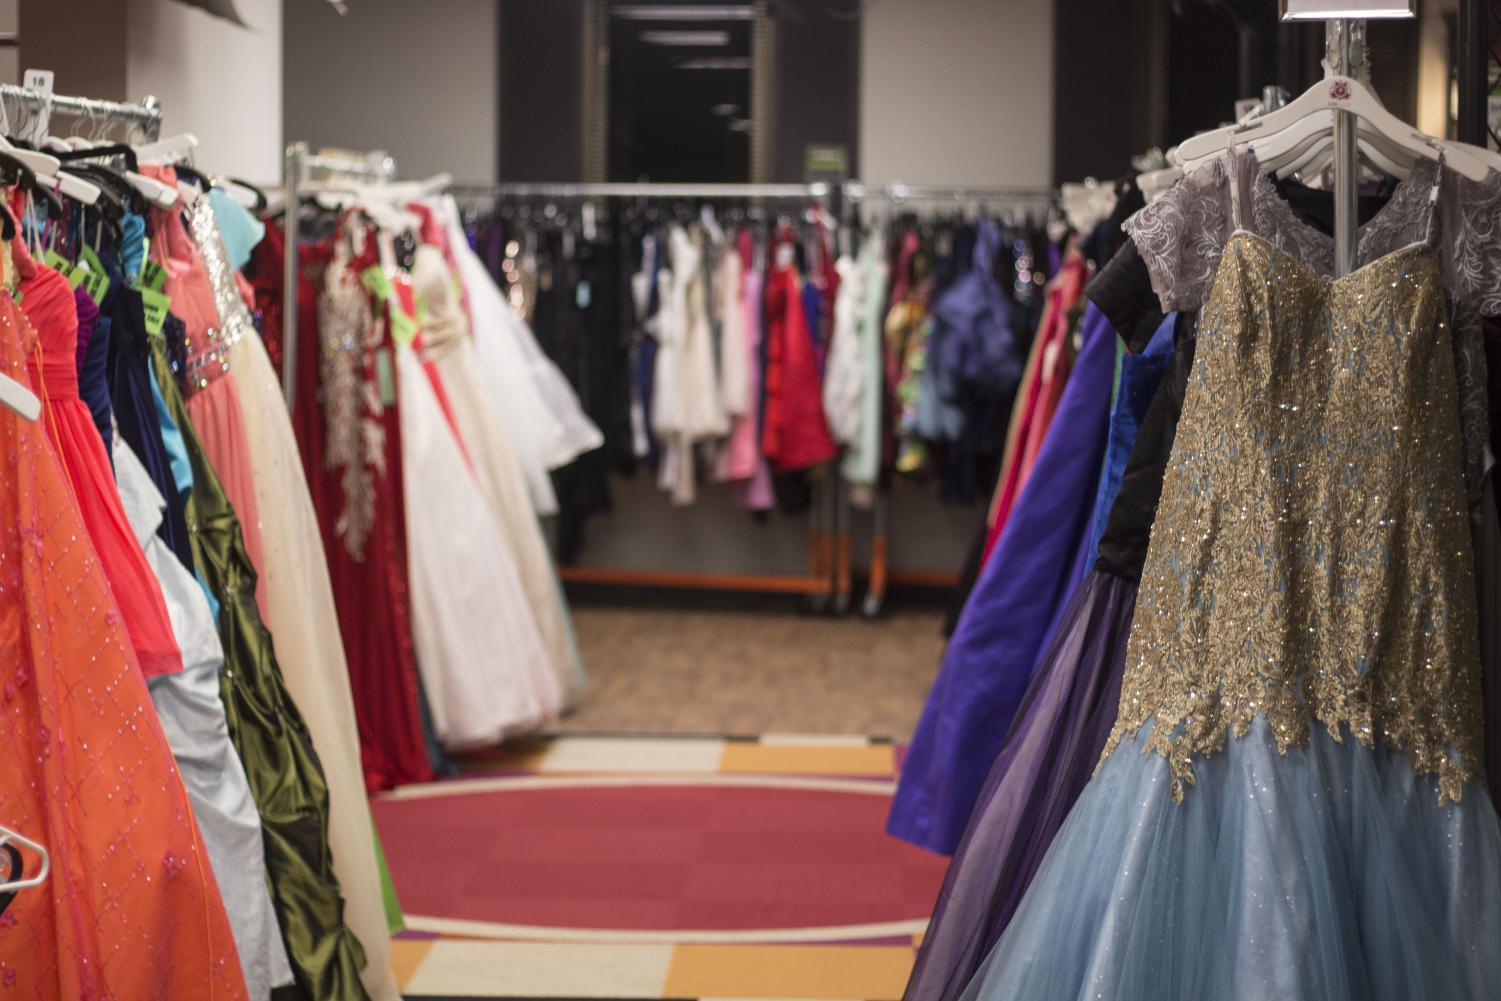 PRINCESS PREPARATION: The ReFresh office, the headquarters for the Cinderella Project, holds thousands of dresses for each gril to choose from. VIPS (Very Important Princesses) get to look through as many dresses as it takes for them to find the perfect one.